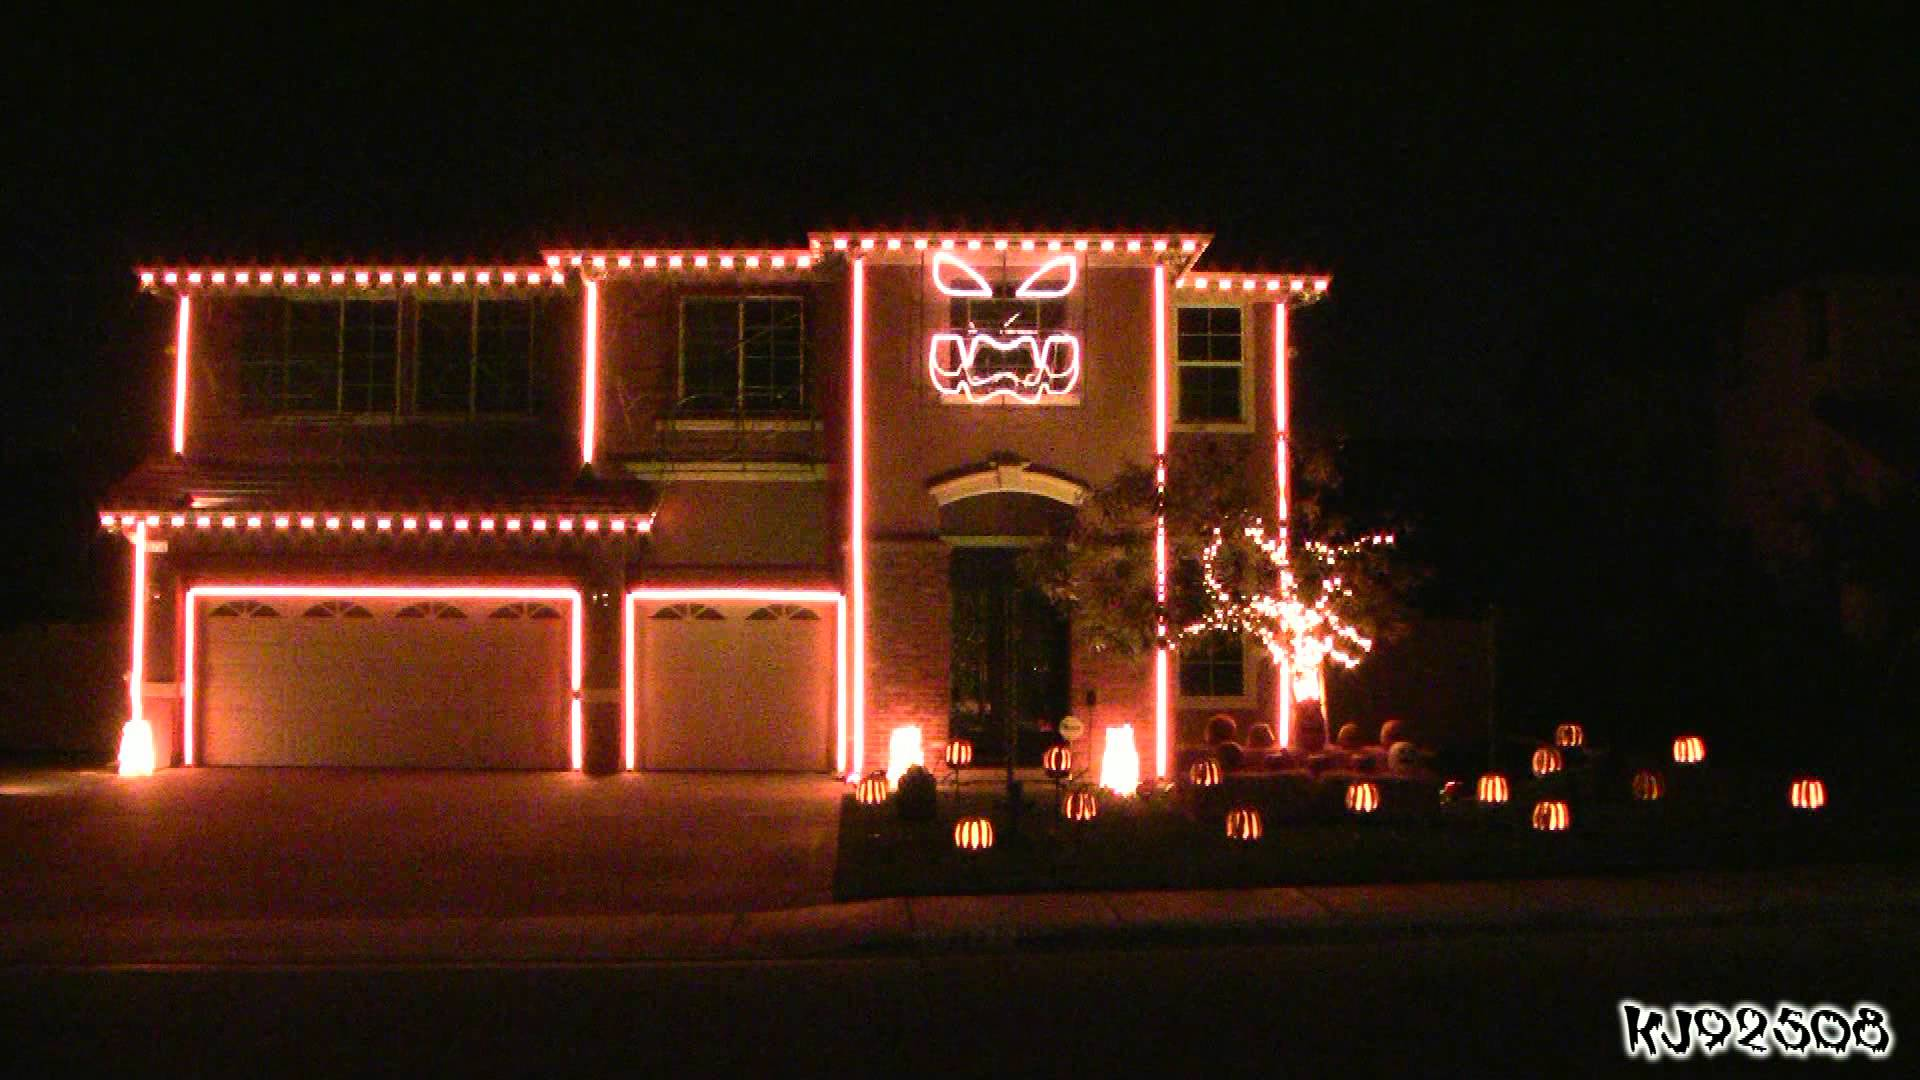 Halloween Light Show A House With Led Lights Synchronized To Music